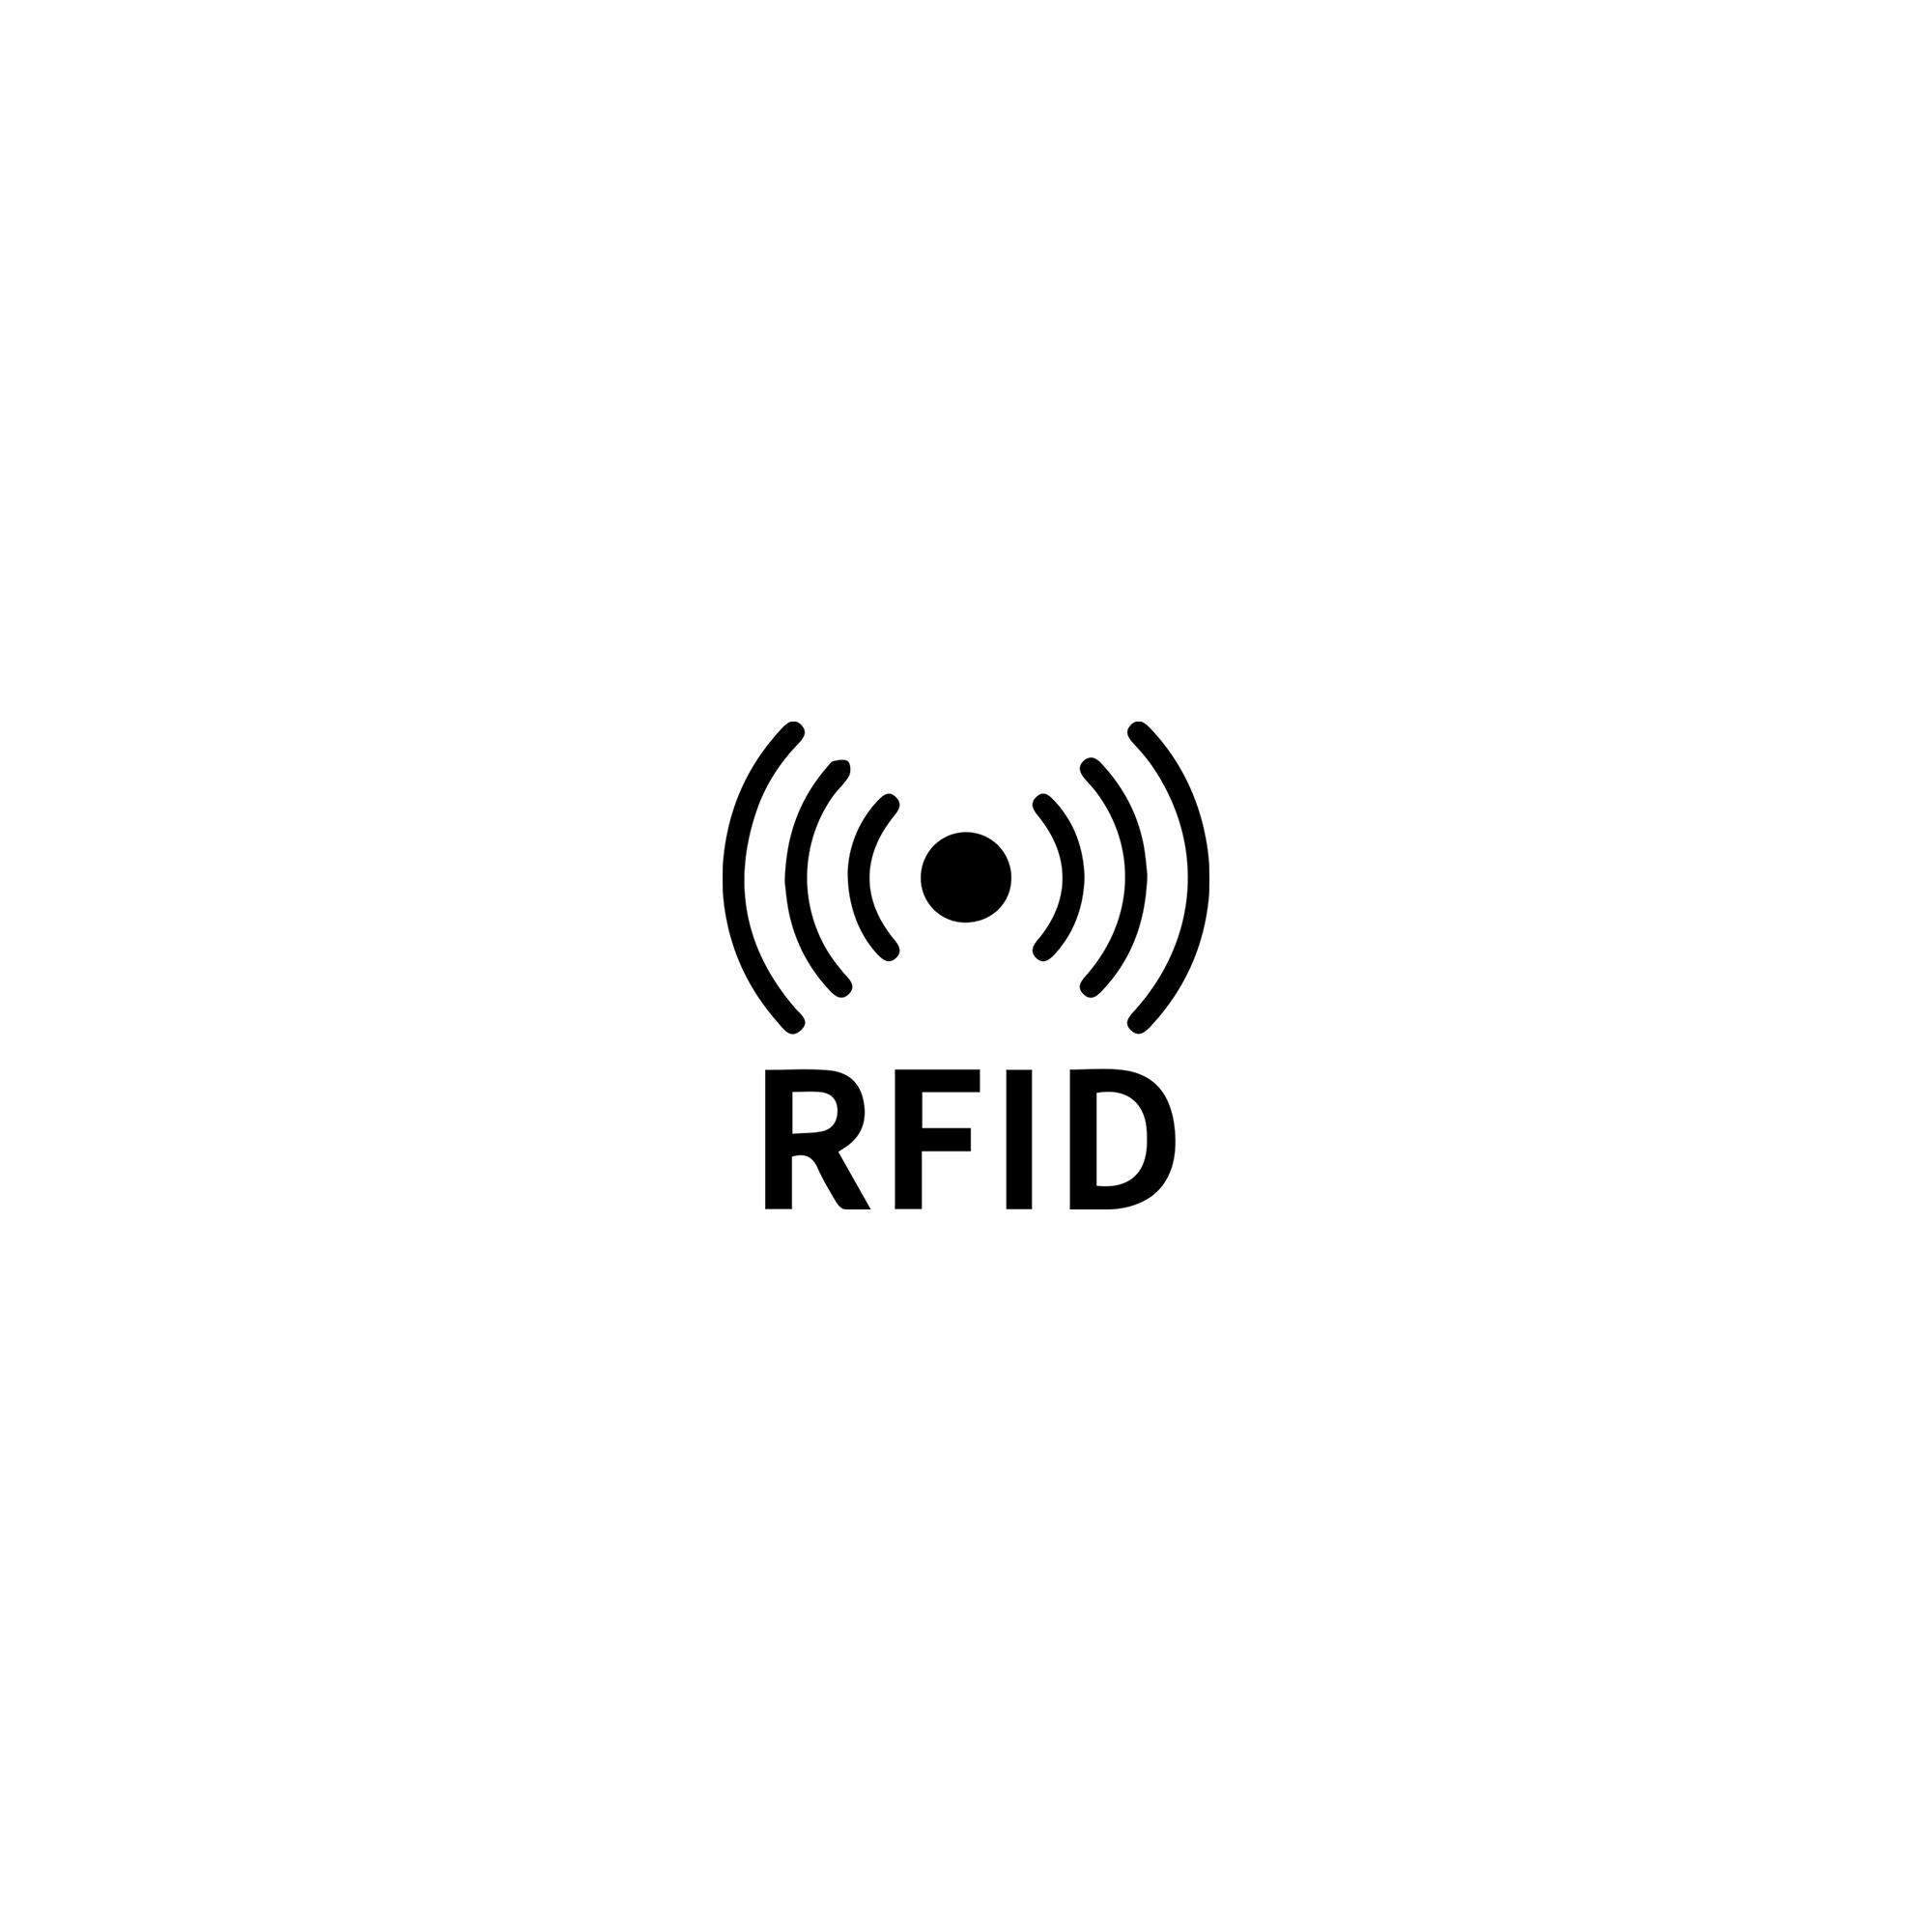 Rfid New York Porte-documents NOIR